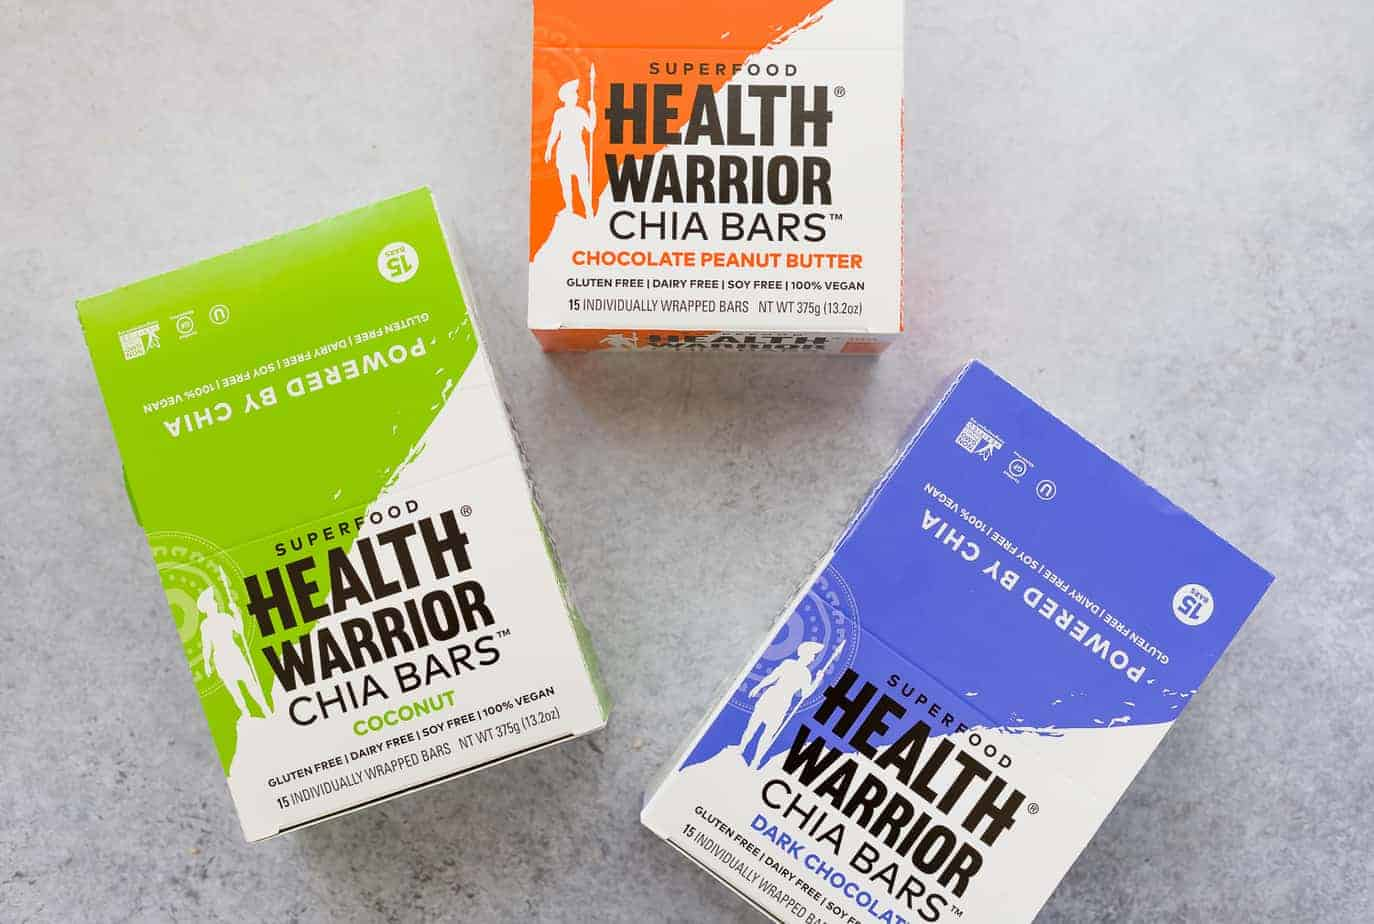 Superfood Health Warrior Chia Bars